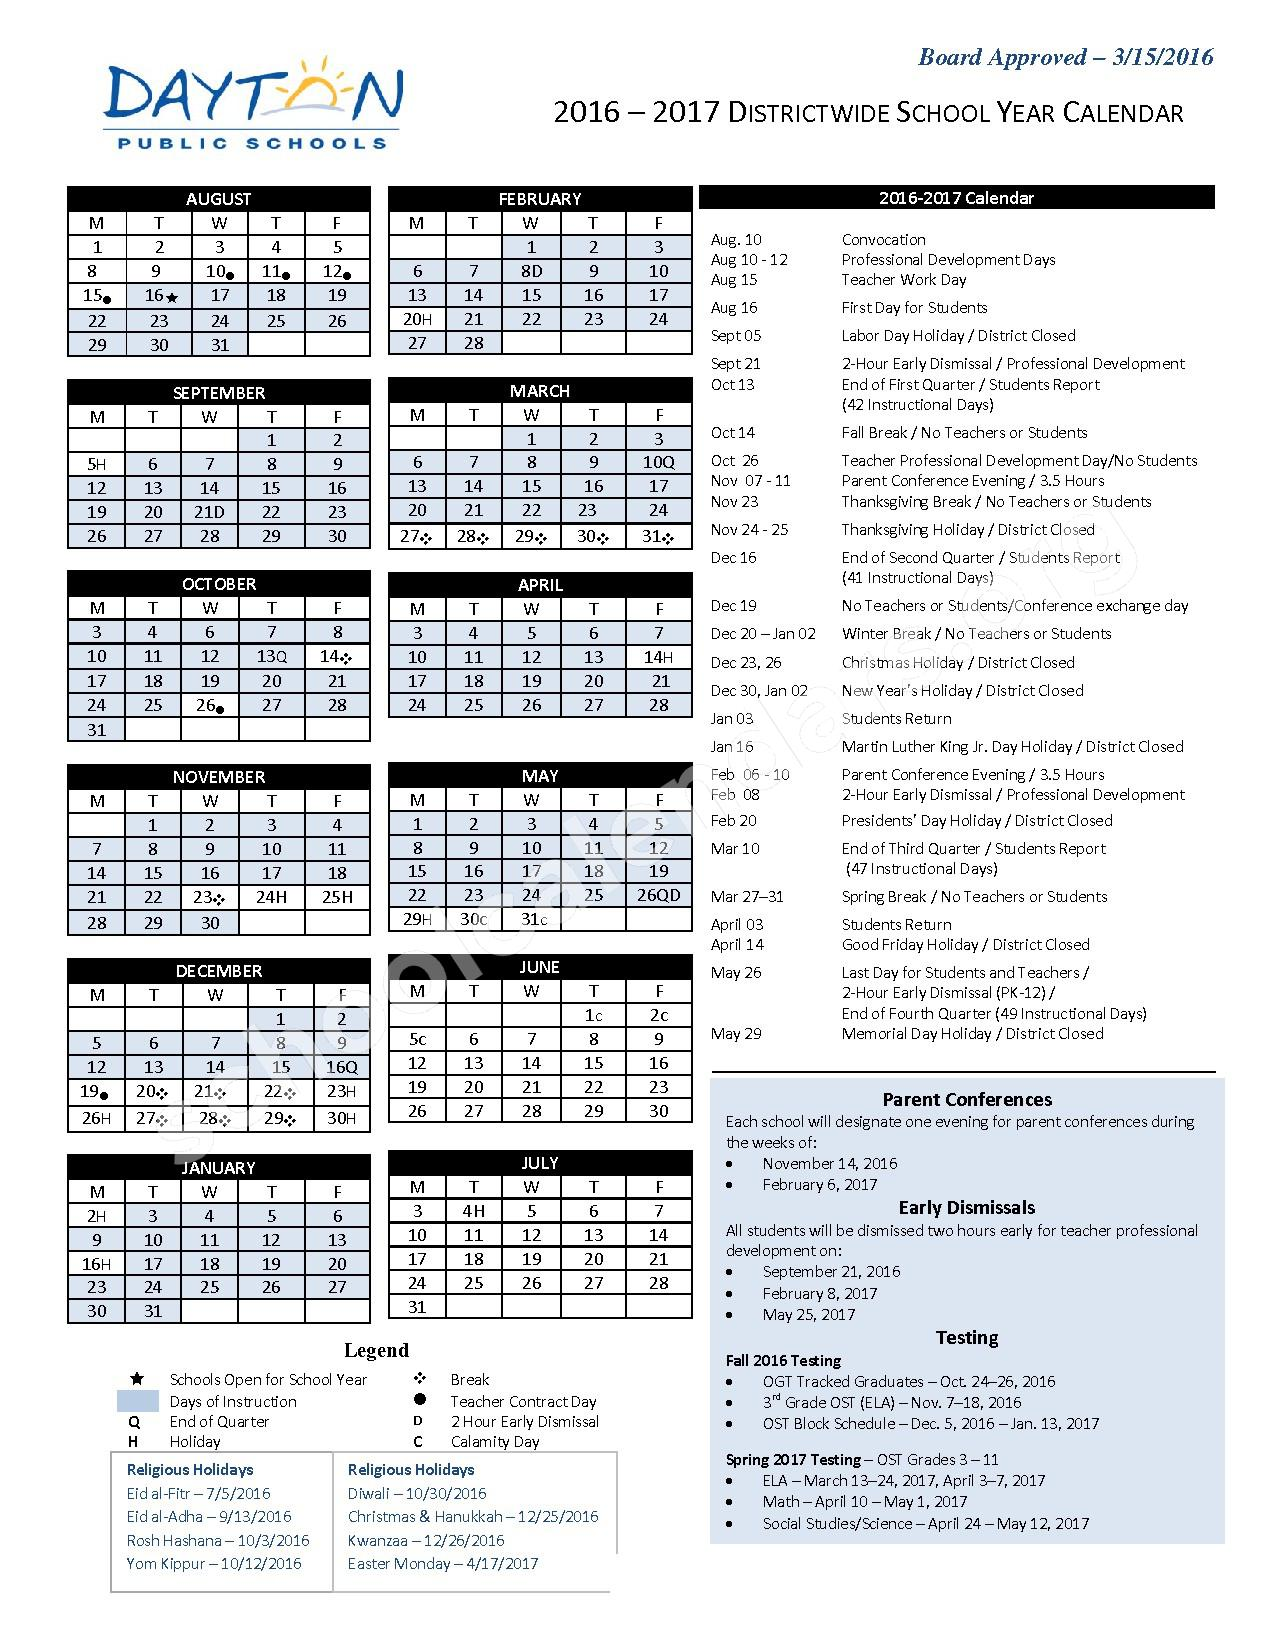 2016 - 2017 DPS Academic Calendar – World of Wonder PreK-8 School – page 1